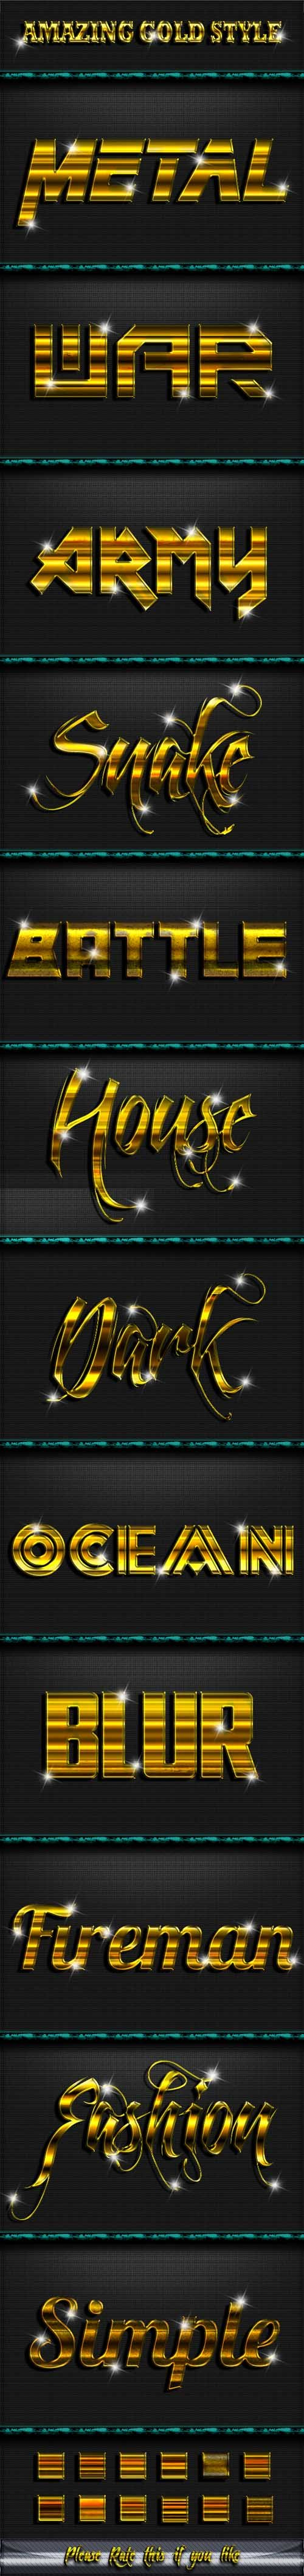 Graphicriver - Gold Style Text Effect V.2 20244817